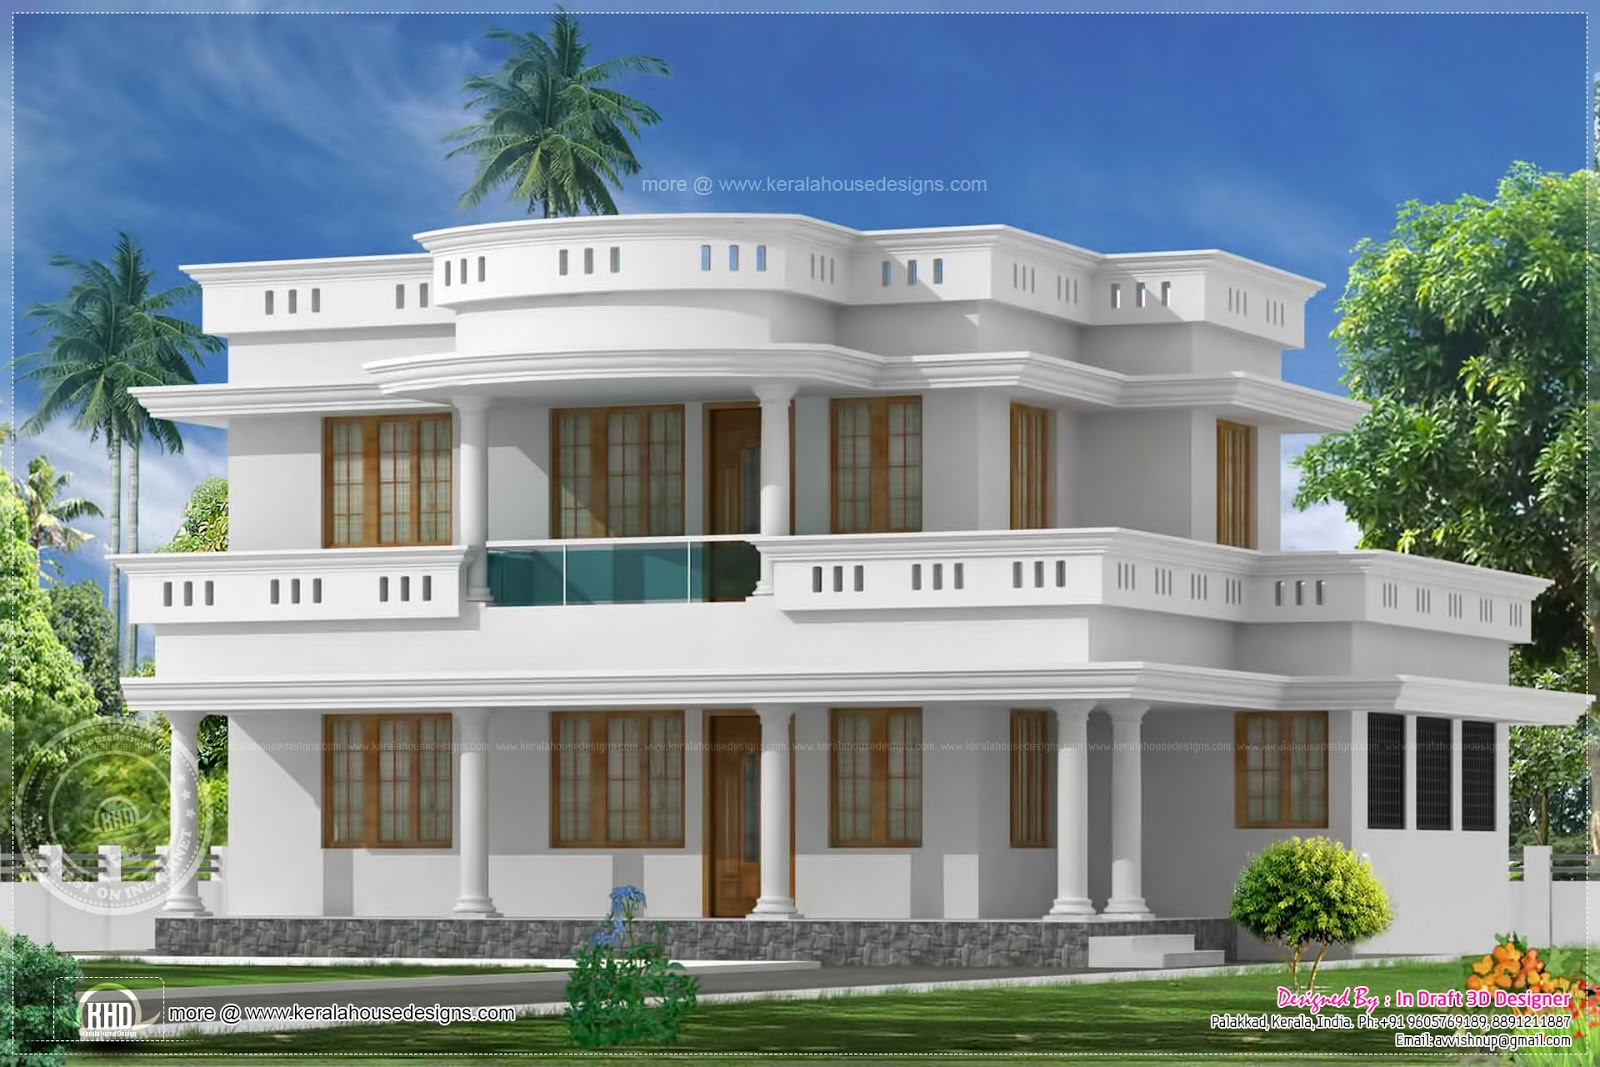 2192 Square Feet Villa Exterior Design Kerala Home